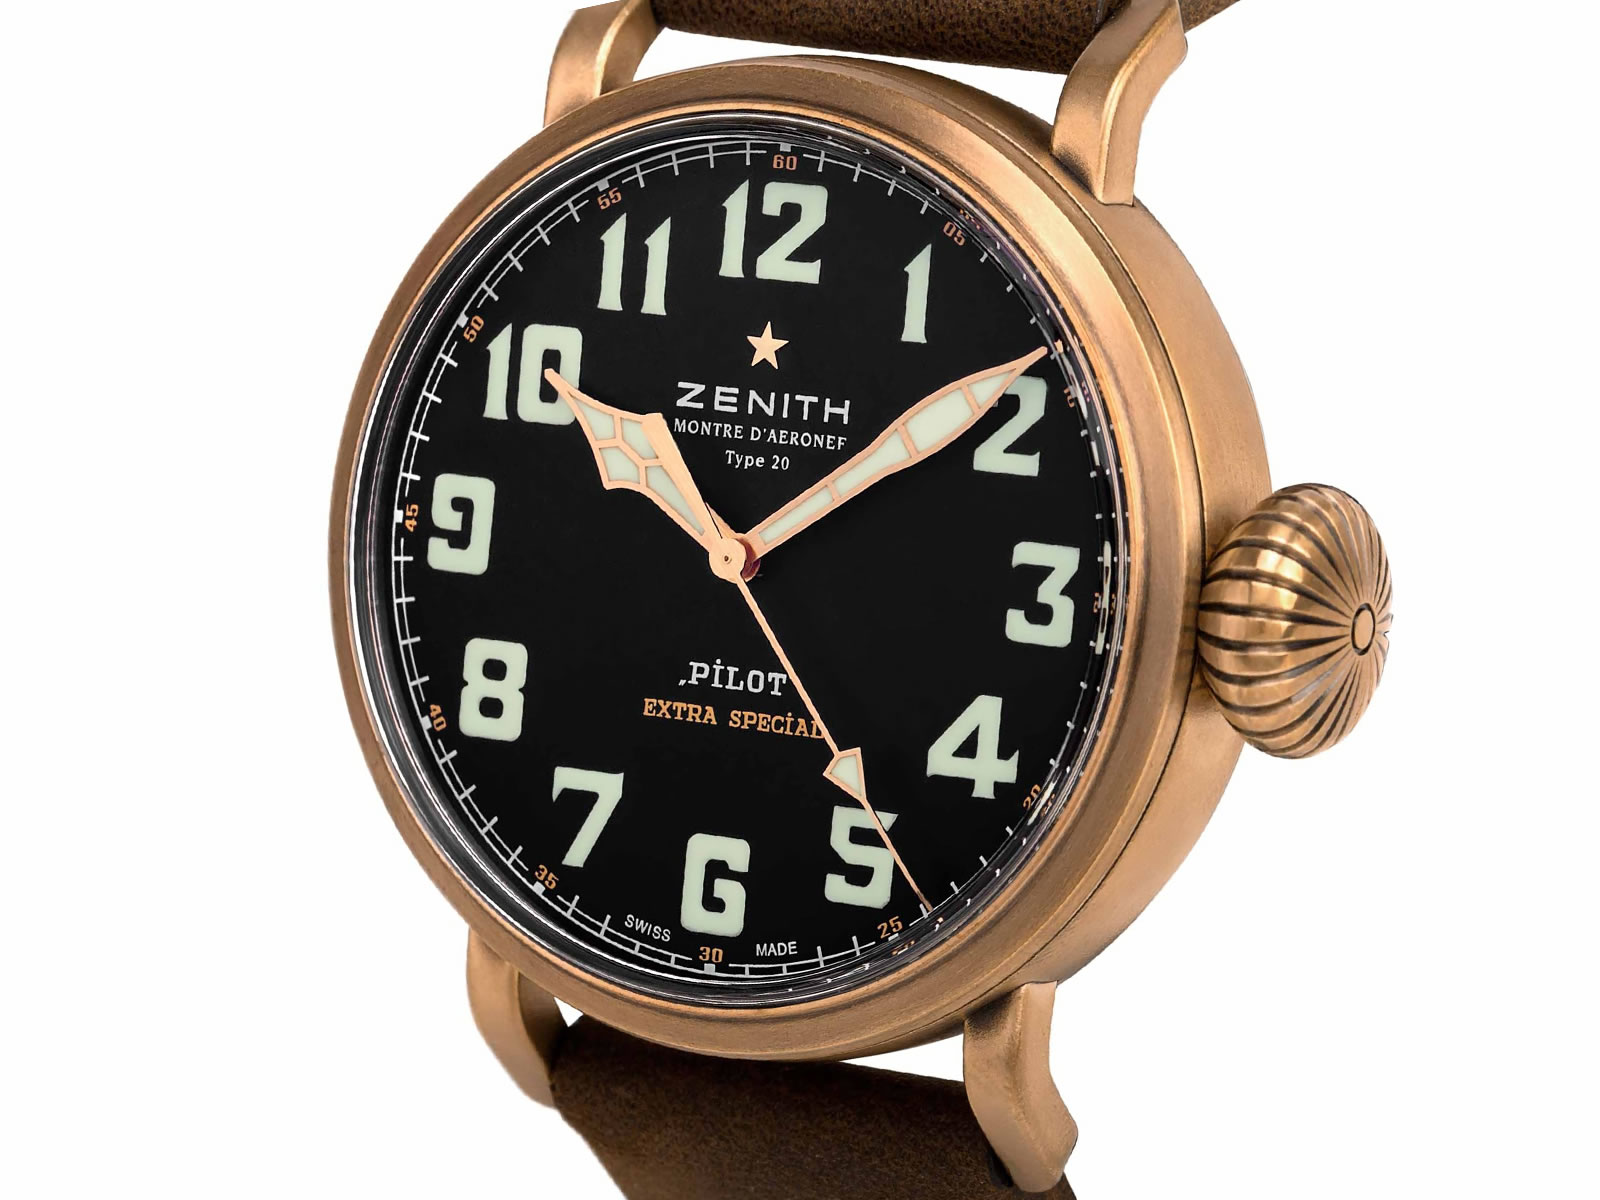 29-2430-679-21-c753-zenith-pilot-type-20-extra-special-automatic-bronze-45mm-.jpg